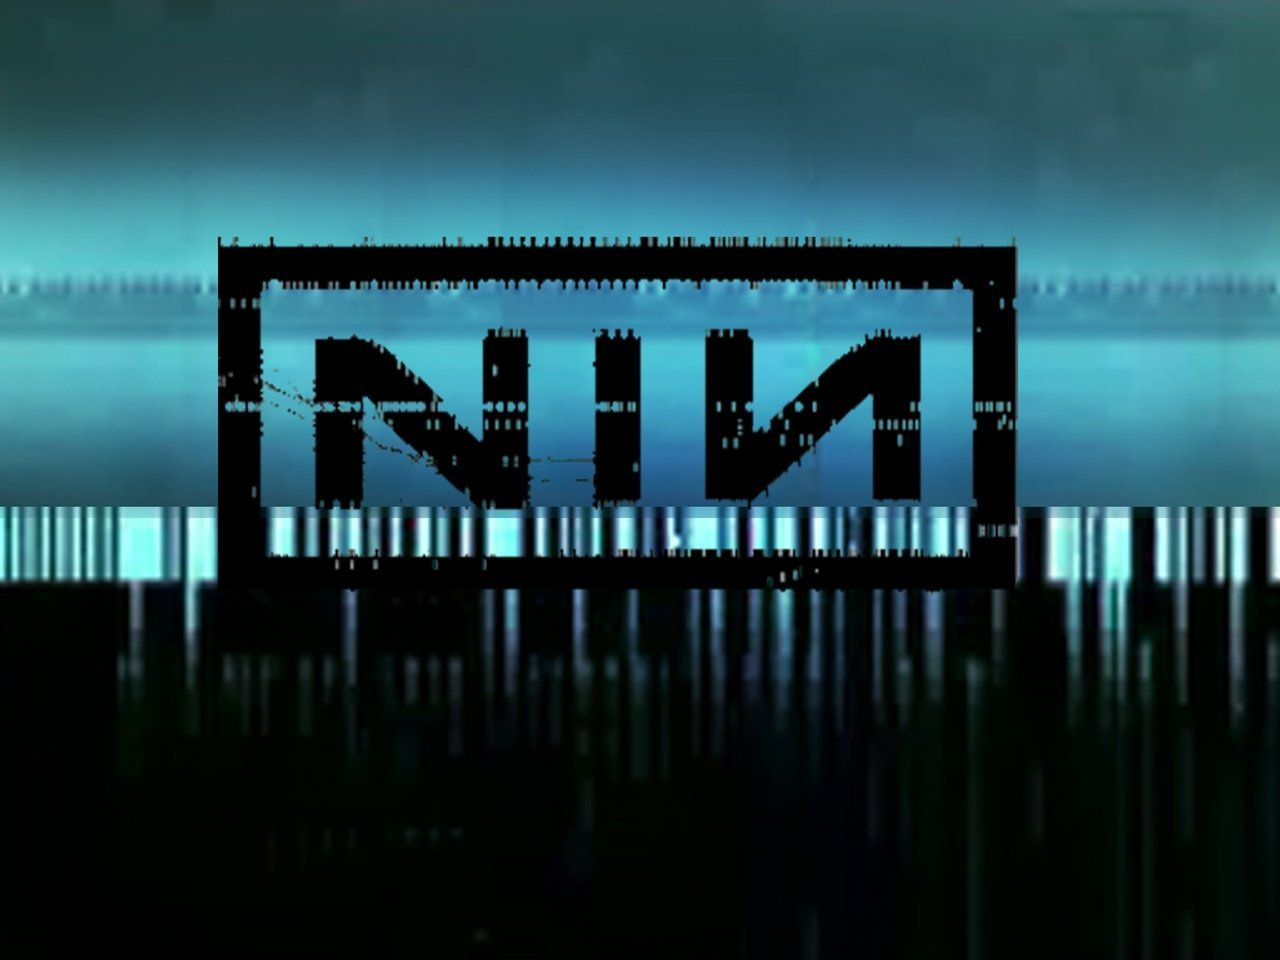 nine inch nails | Nine Inch Nails Wallpaper | Music Wallpapers ...